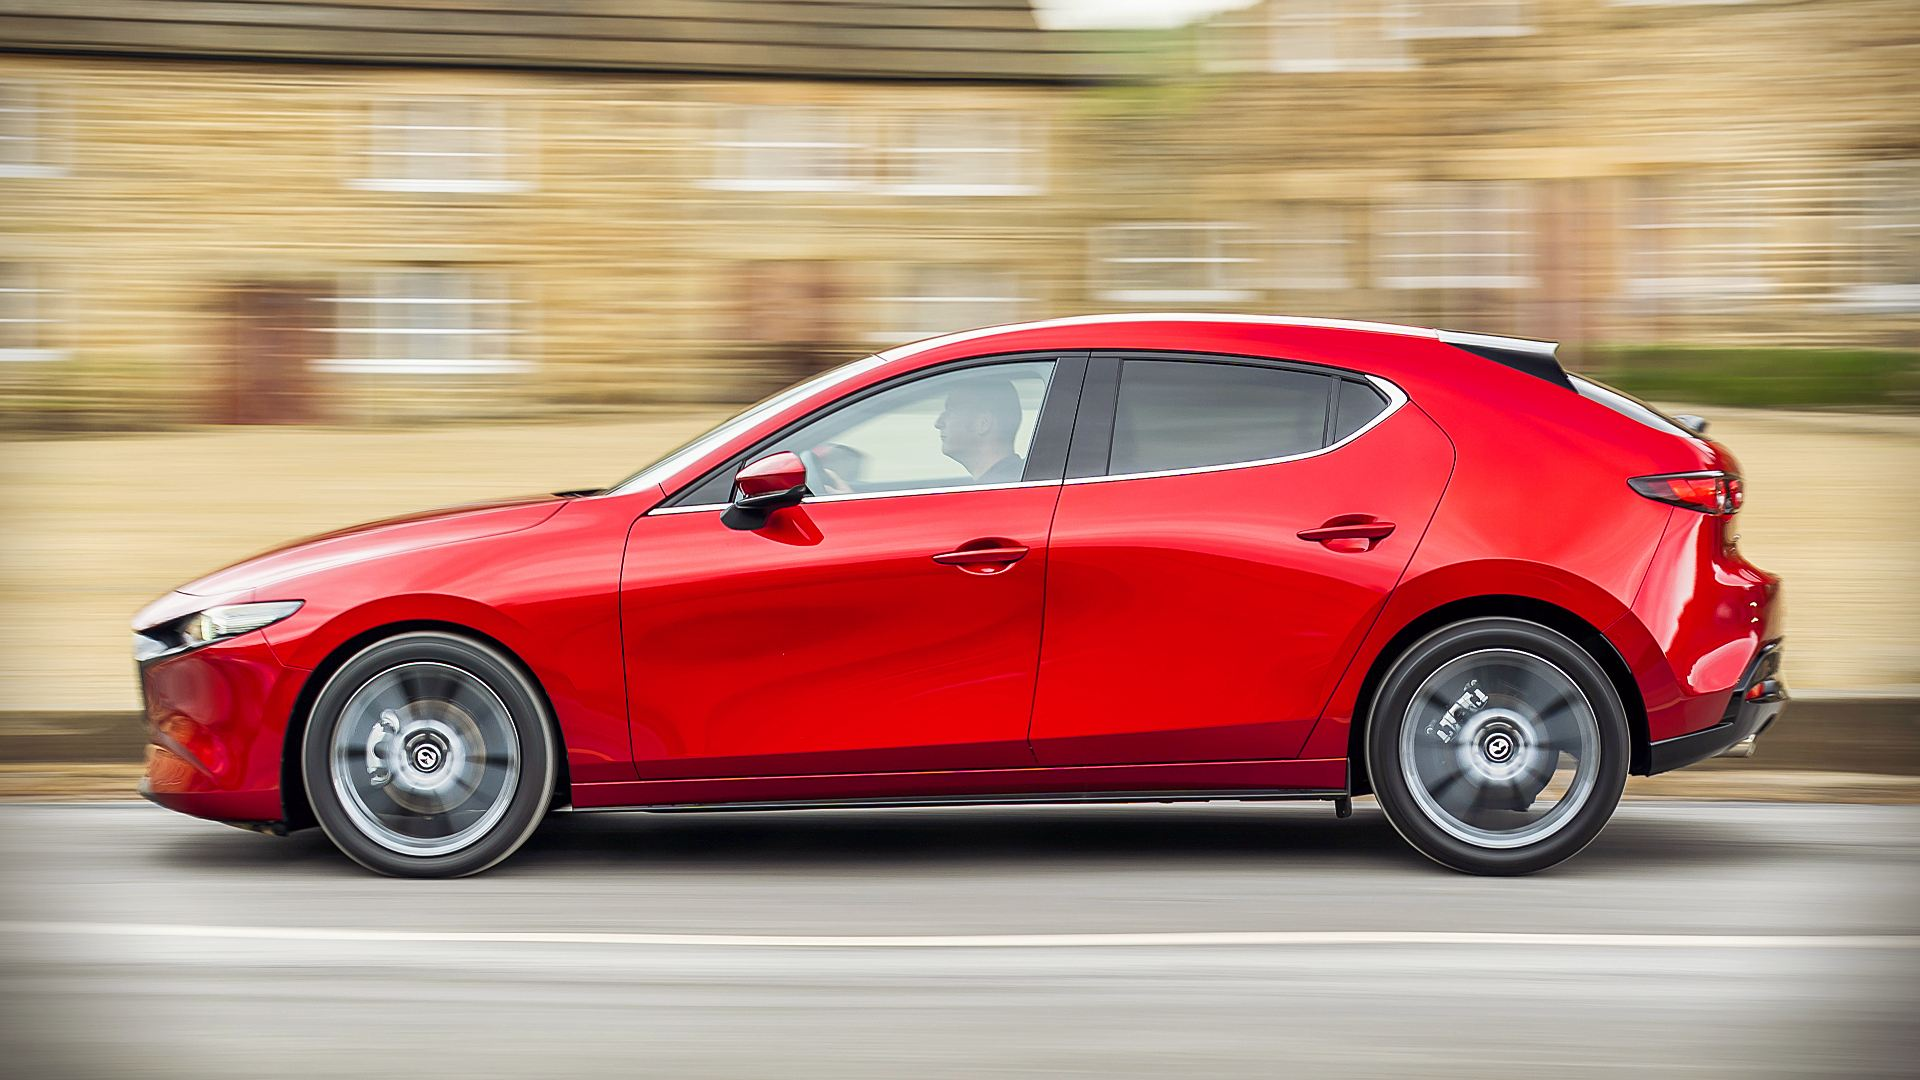 2020 Mazda 3 Hatchback Sport USA Images